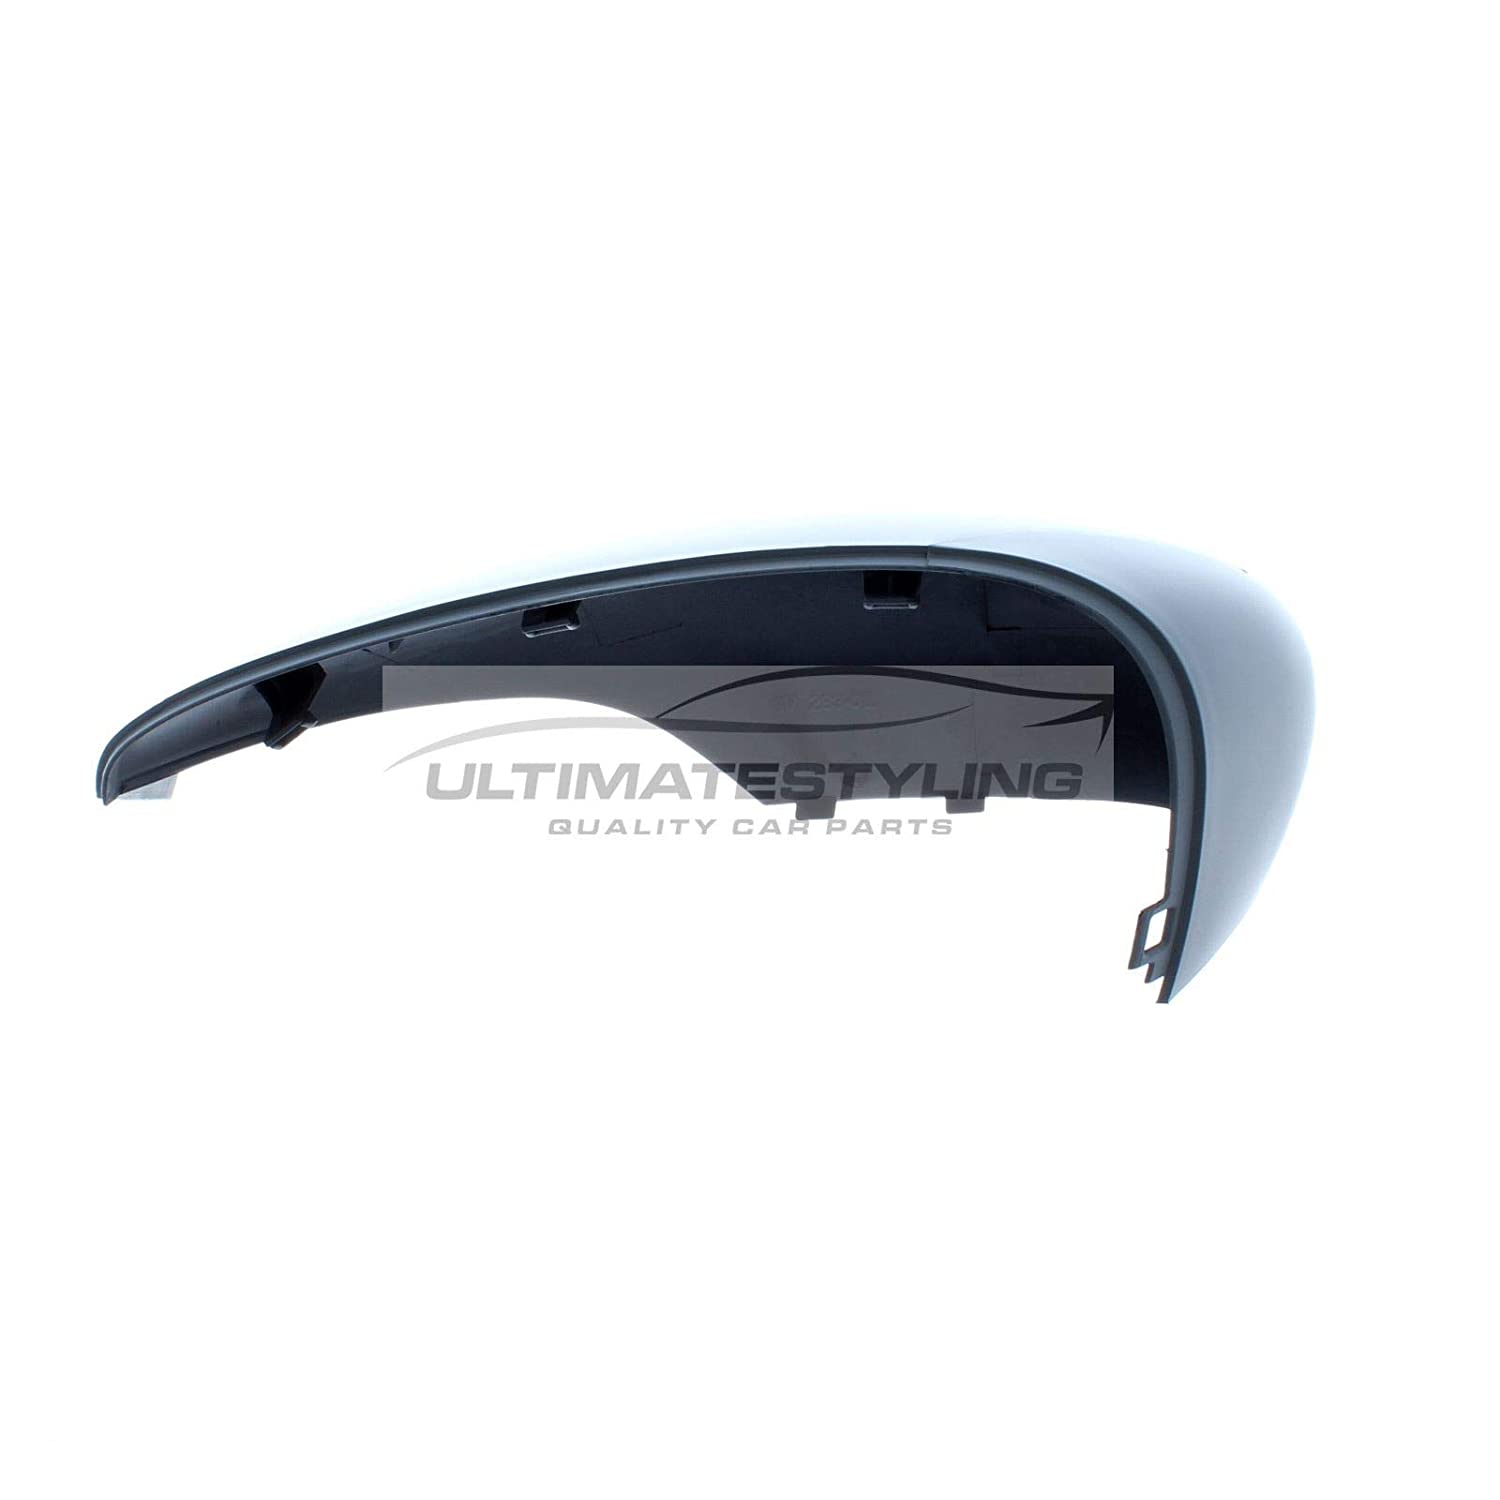 LH Ultimate Styling Aftermarket Replacement Wing Mirror Cover Cap Colour Of Cover Primed For Passenger Side Left Hand Side